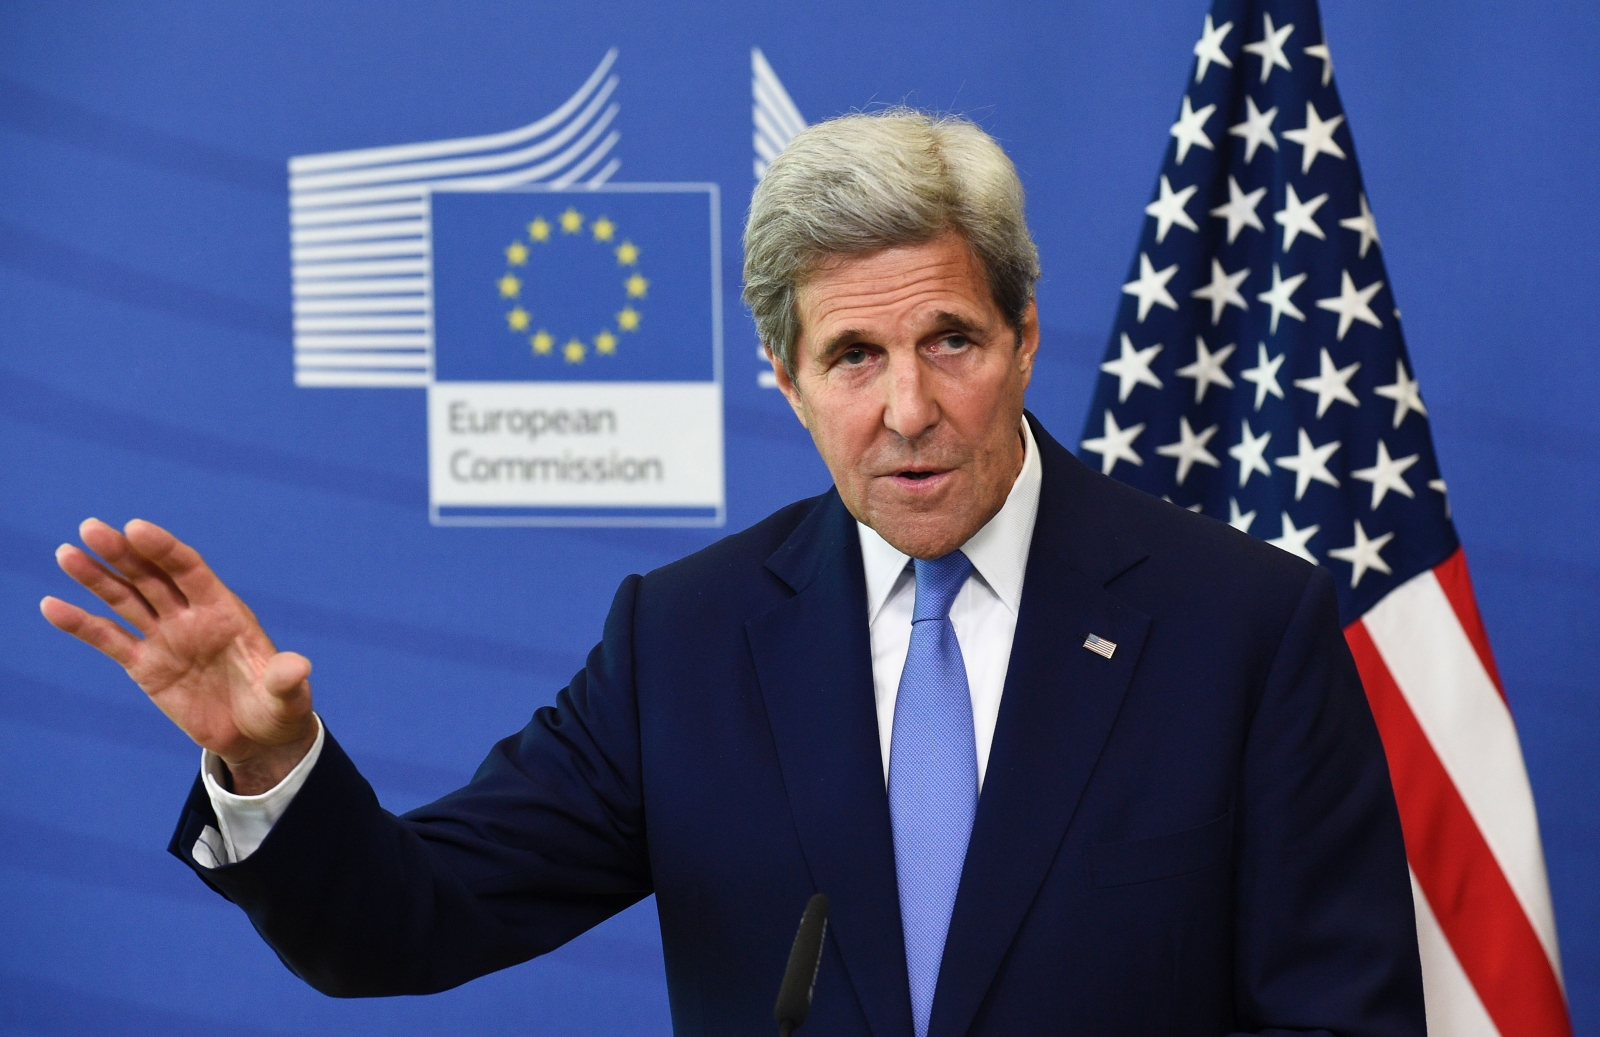 John Kerry speaking in Brussels